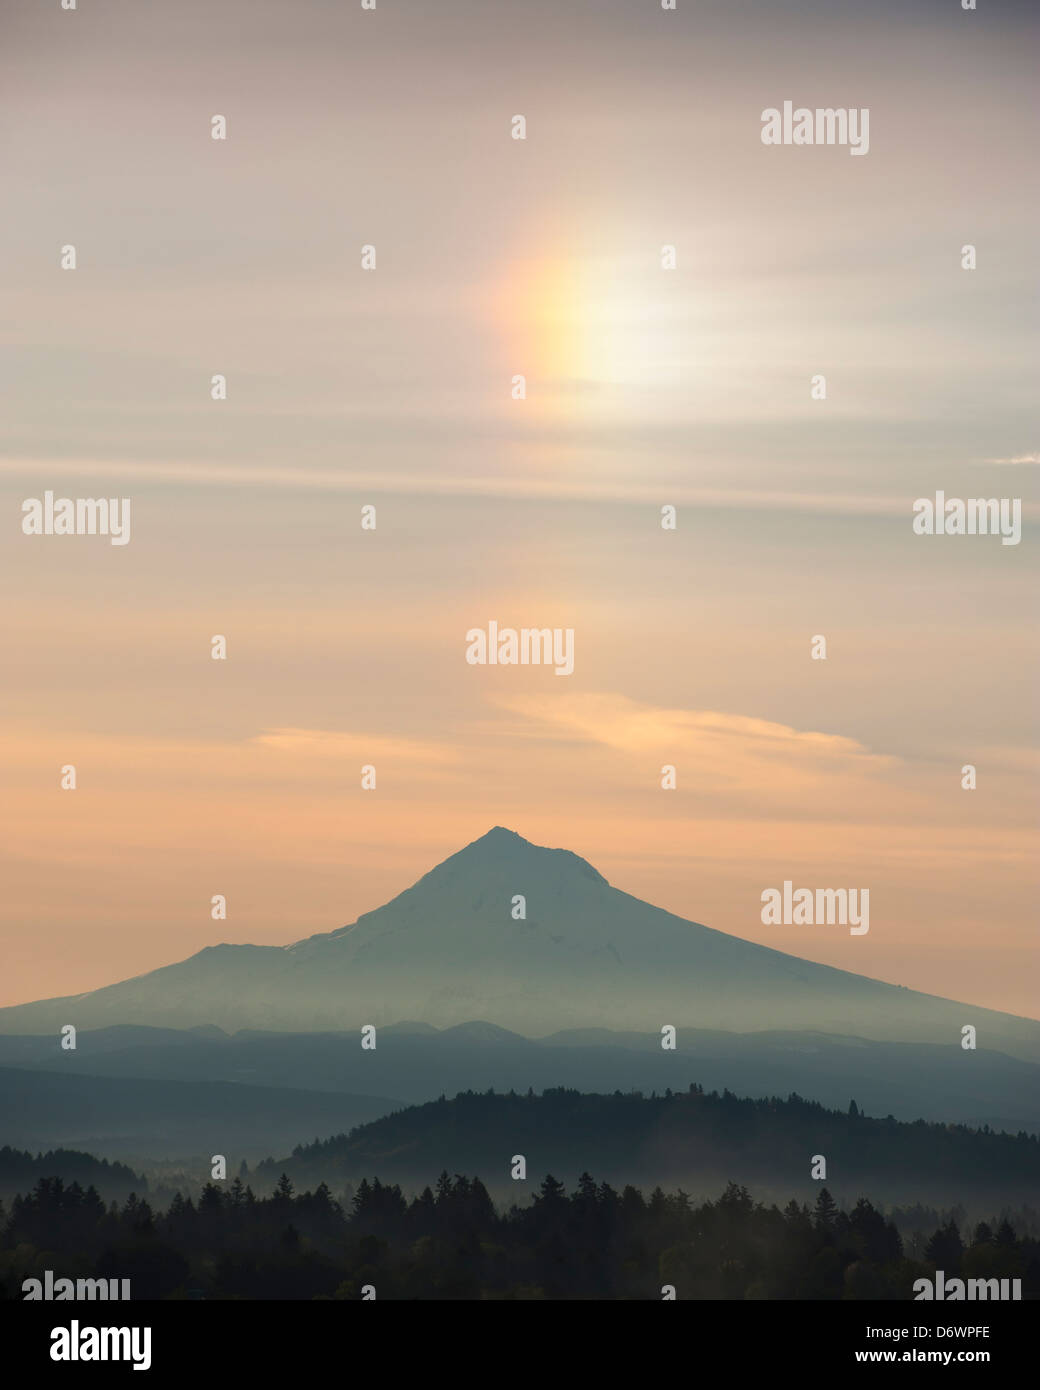 Photograph of a sun dog or mock sun or parhelia positioned above Mount Hood, a dormant volcano in America's - Stock Image